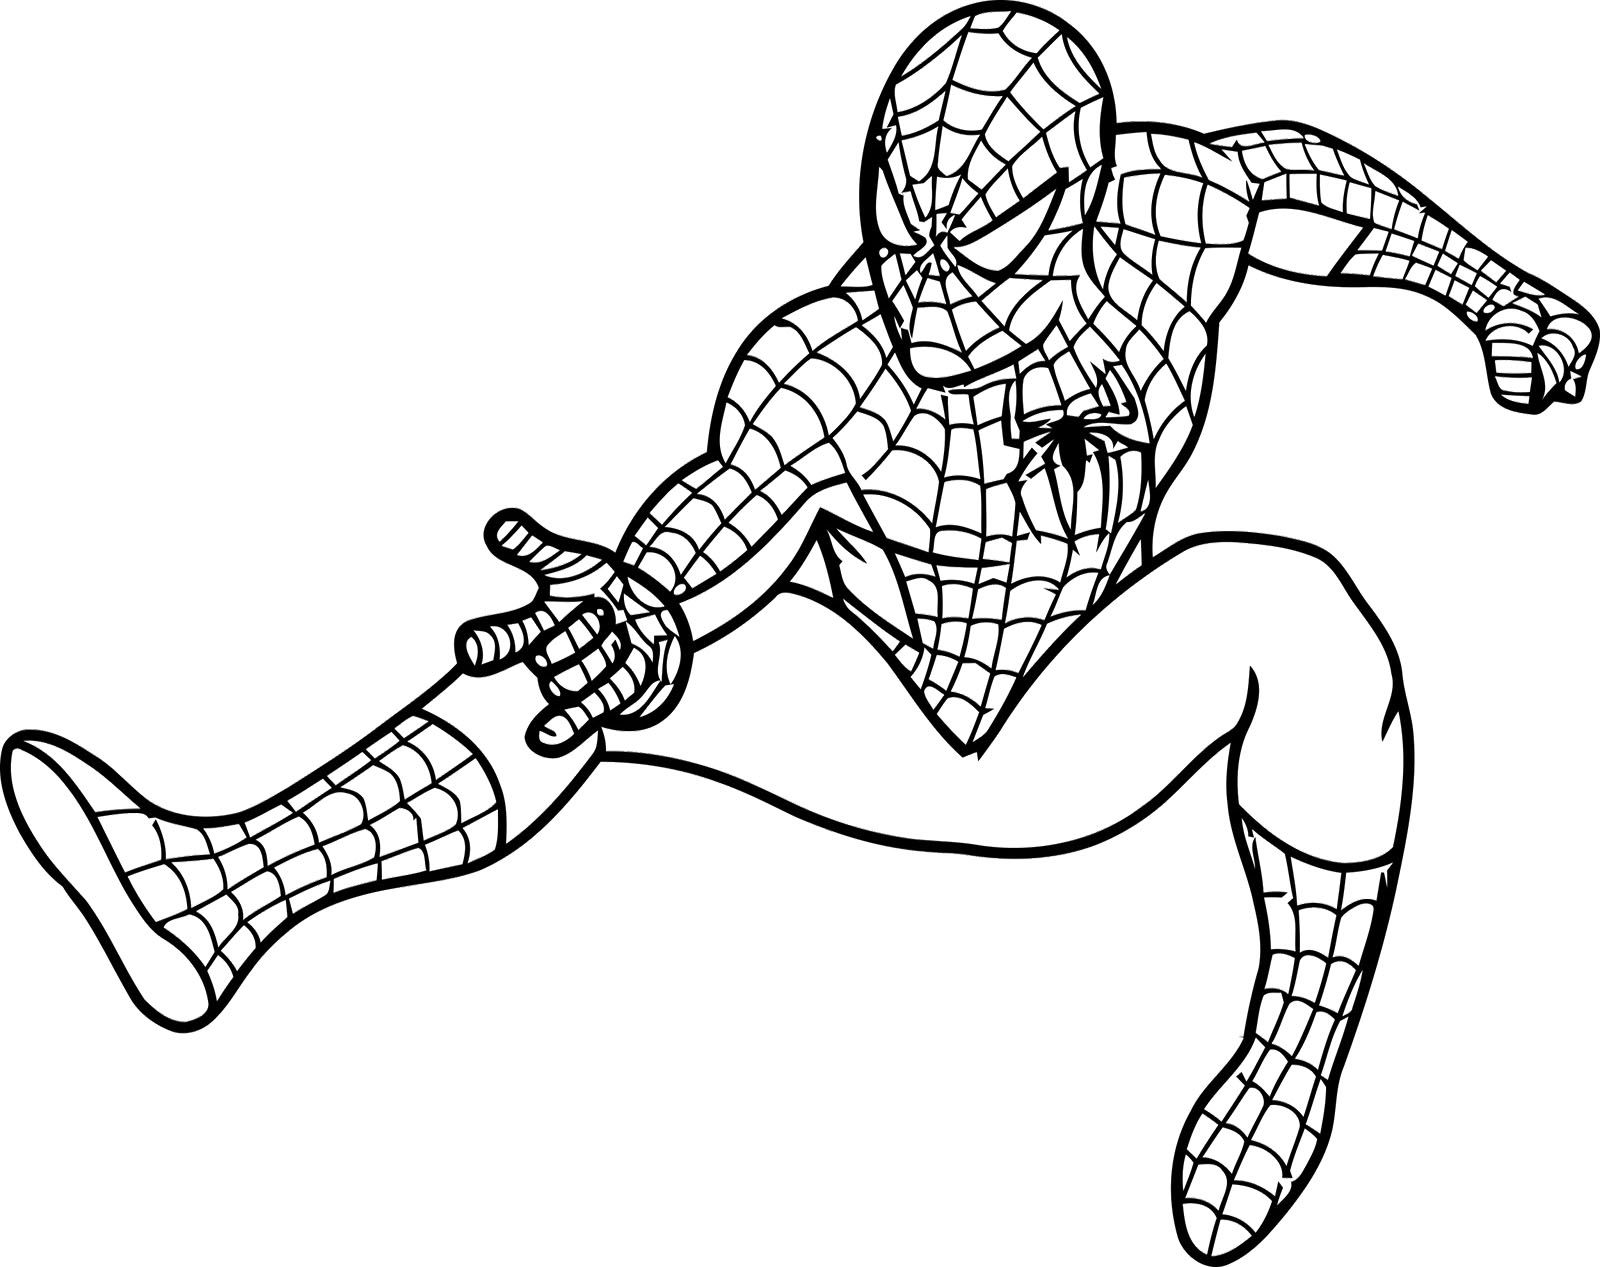 Spiderman Spider Man Black And White Clipart Clipartfest 2 Superhero Coloring Superhero Coloring Pages Spiderman Coloring